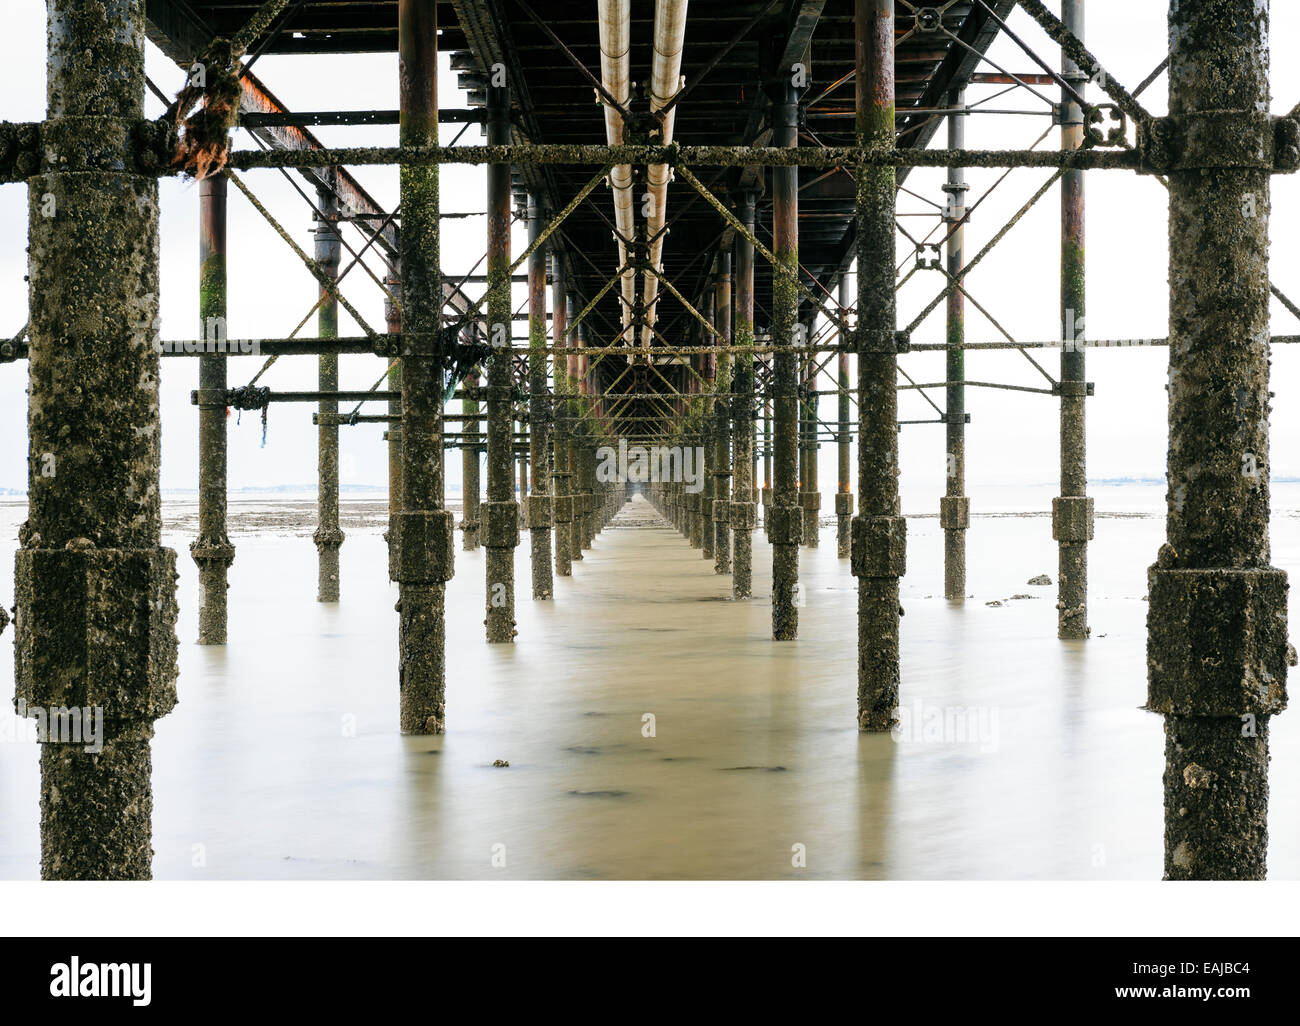 Underneath the iron, barnacle encrusted structure of Southend on sea's pier. - Stock Image